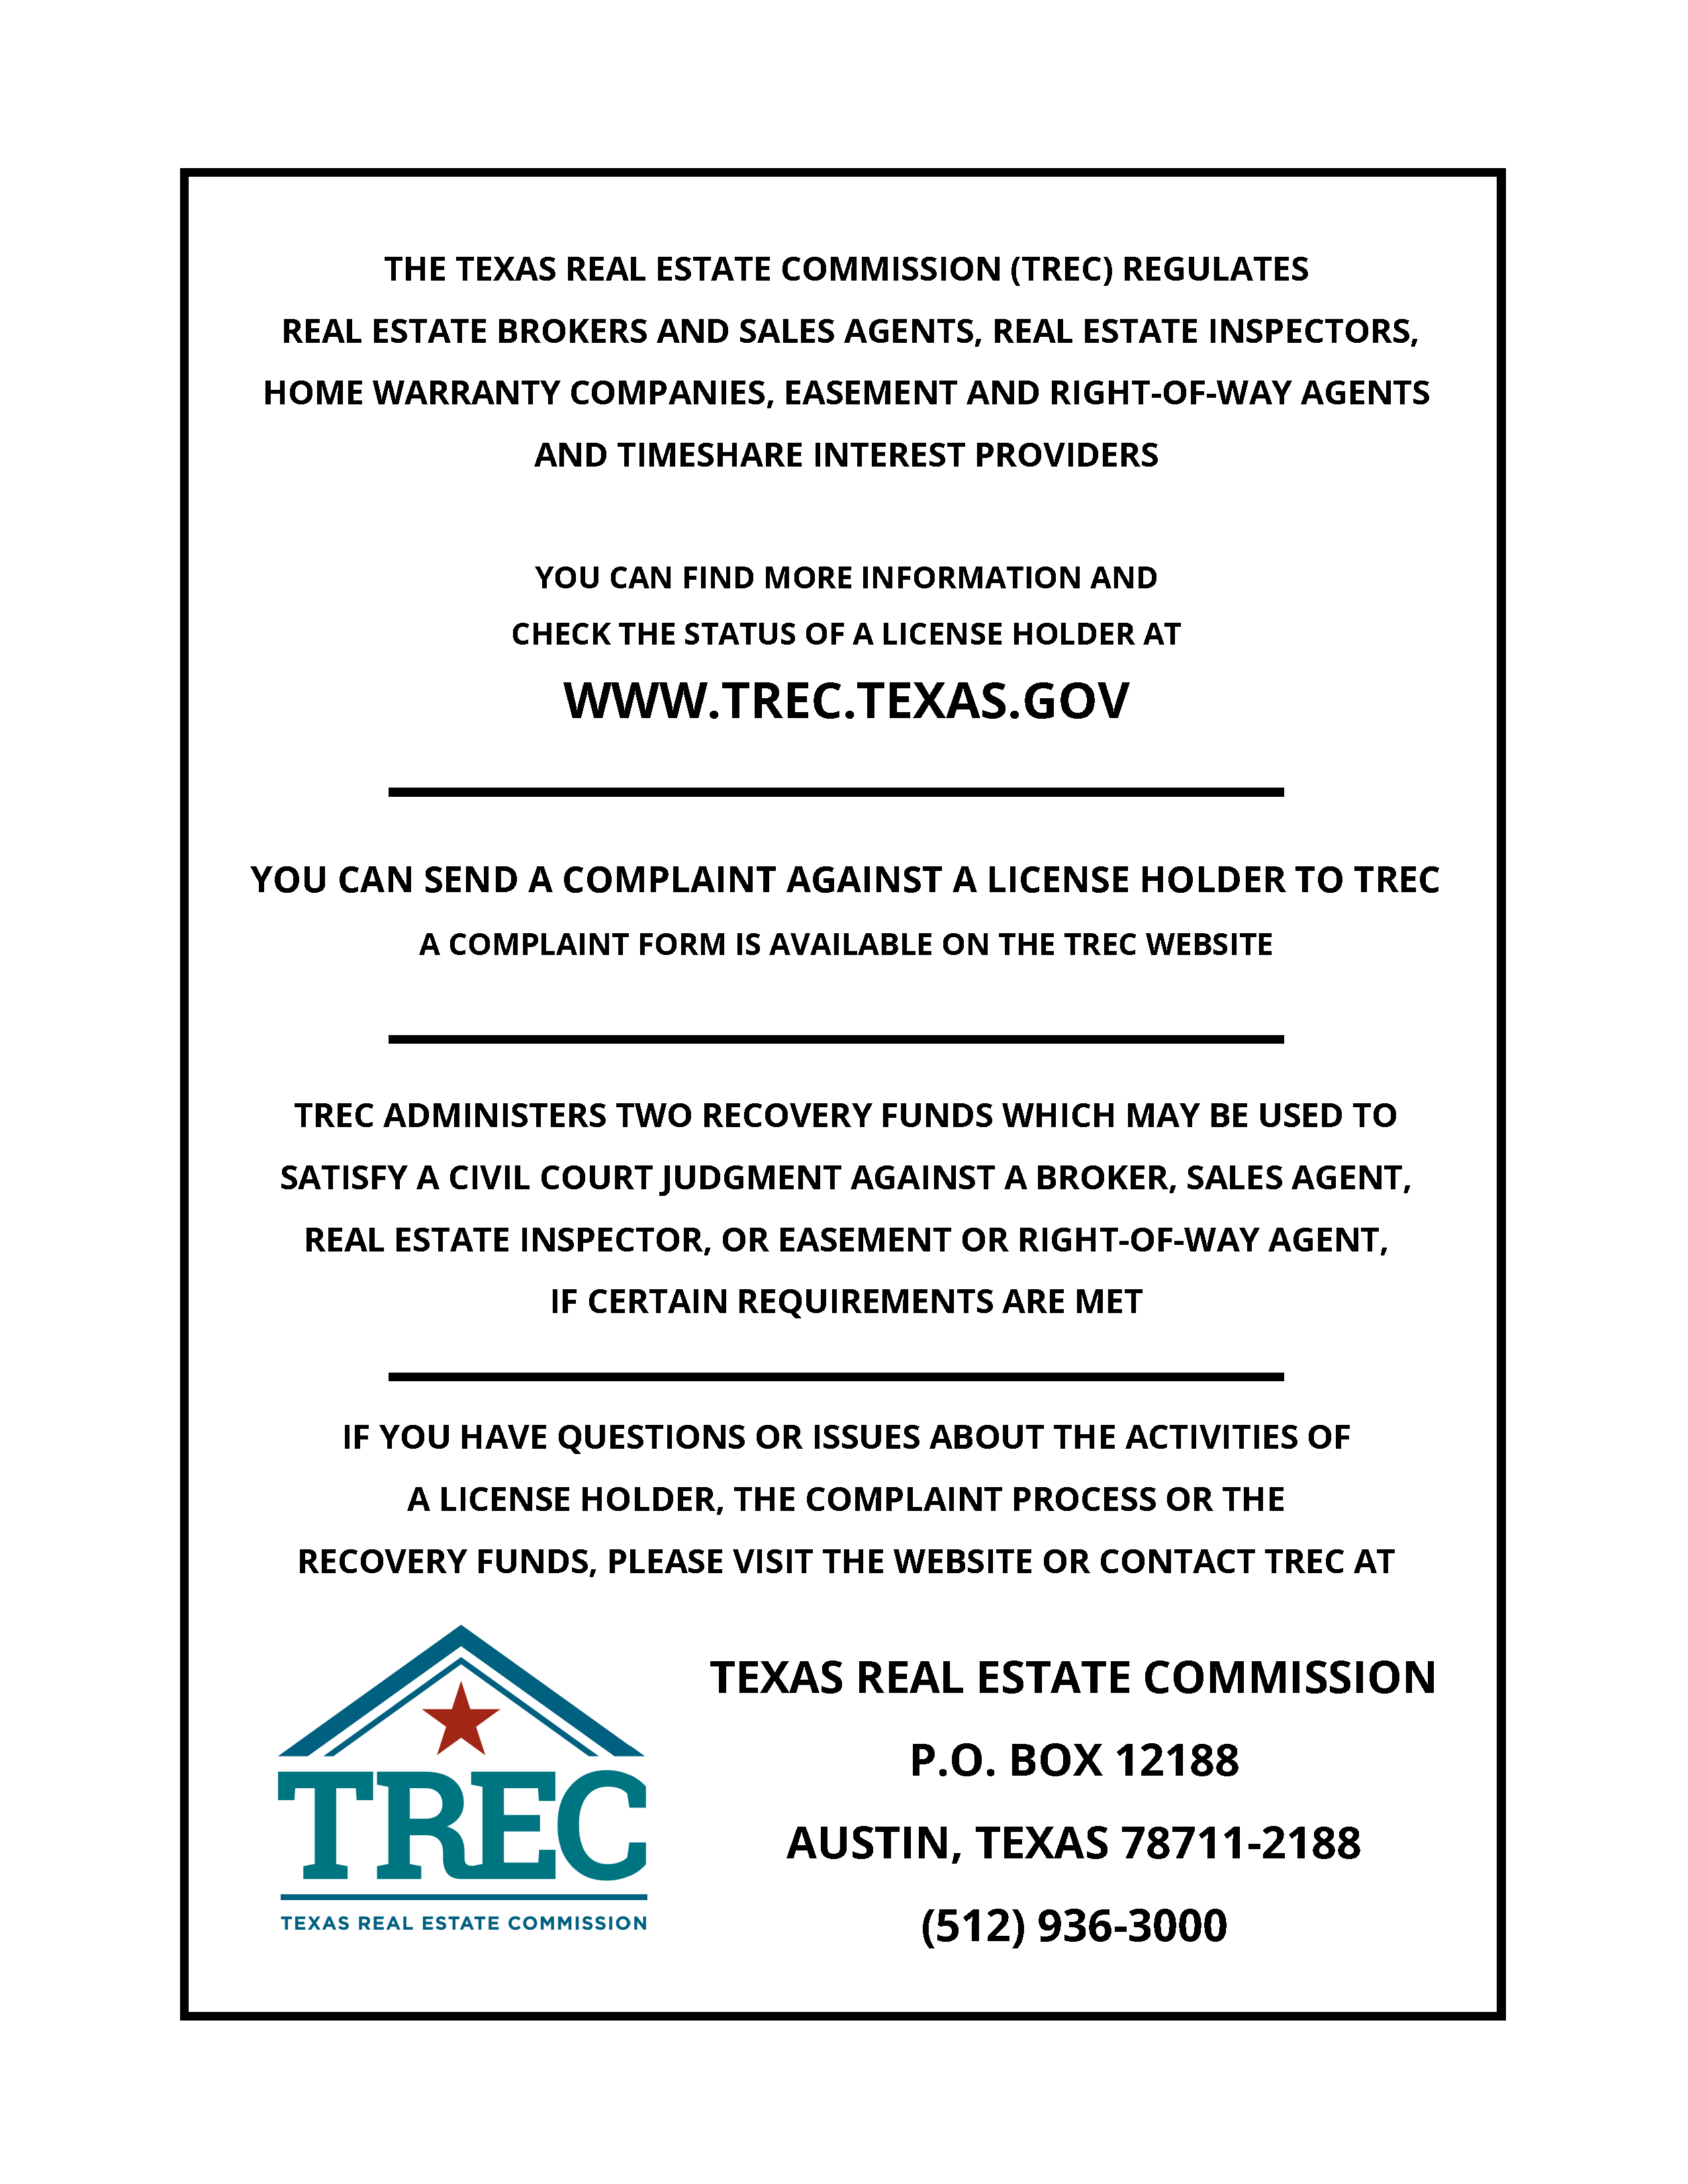 TREC Consumer Protection Notice - Castle Hills Real Estate